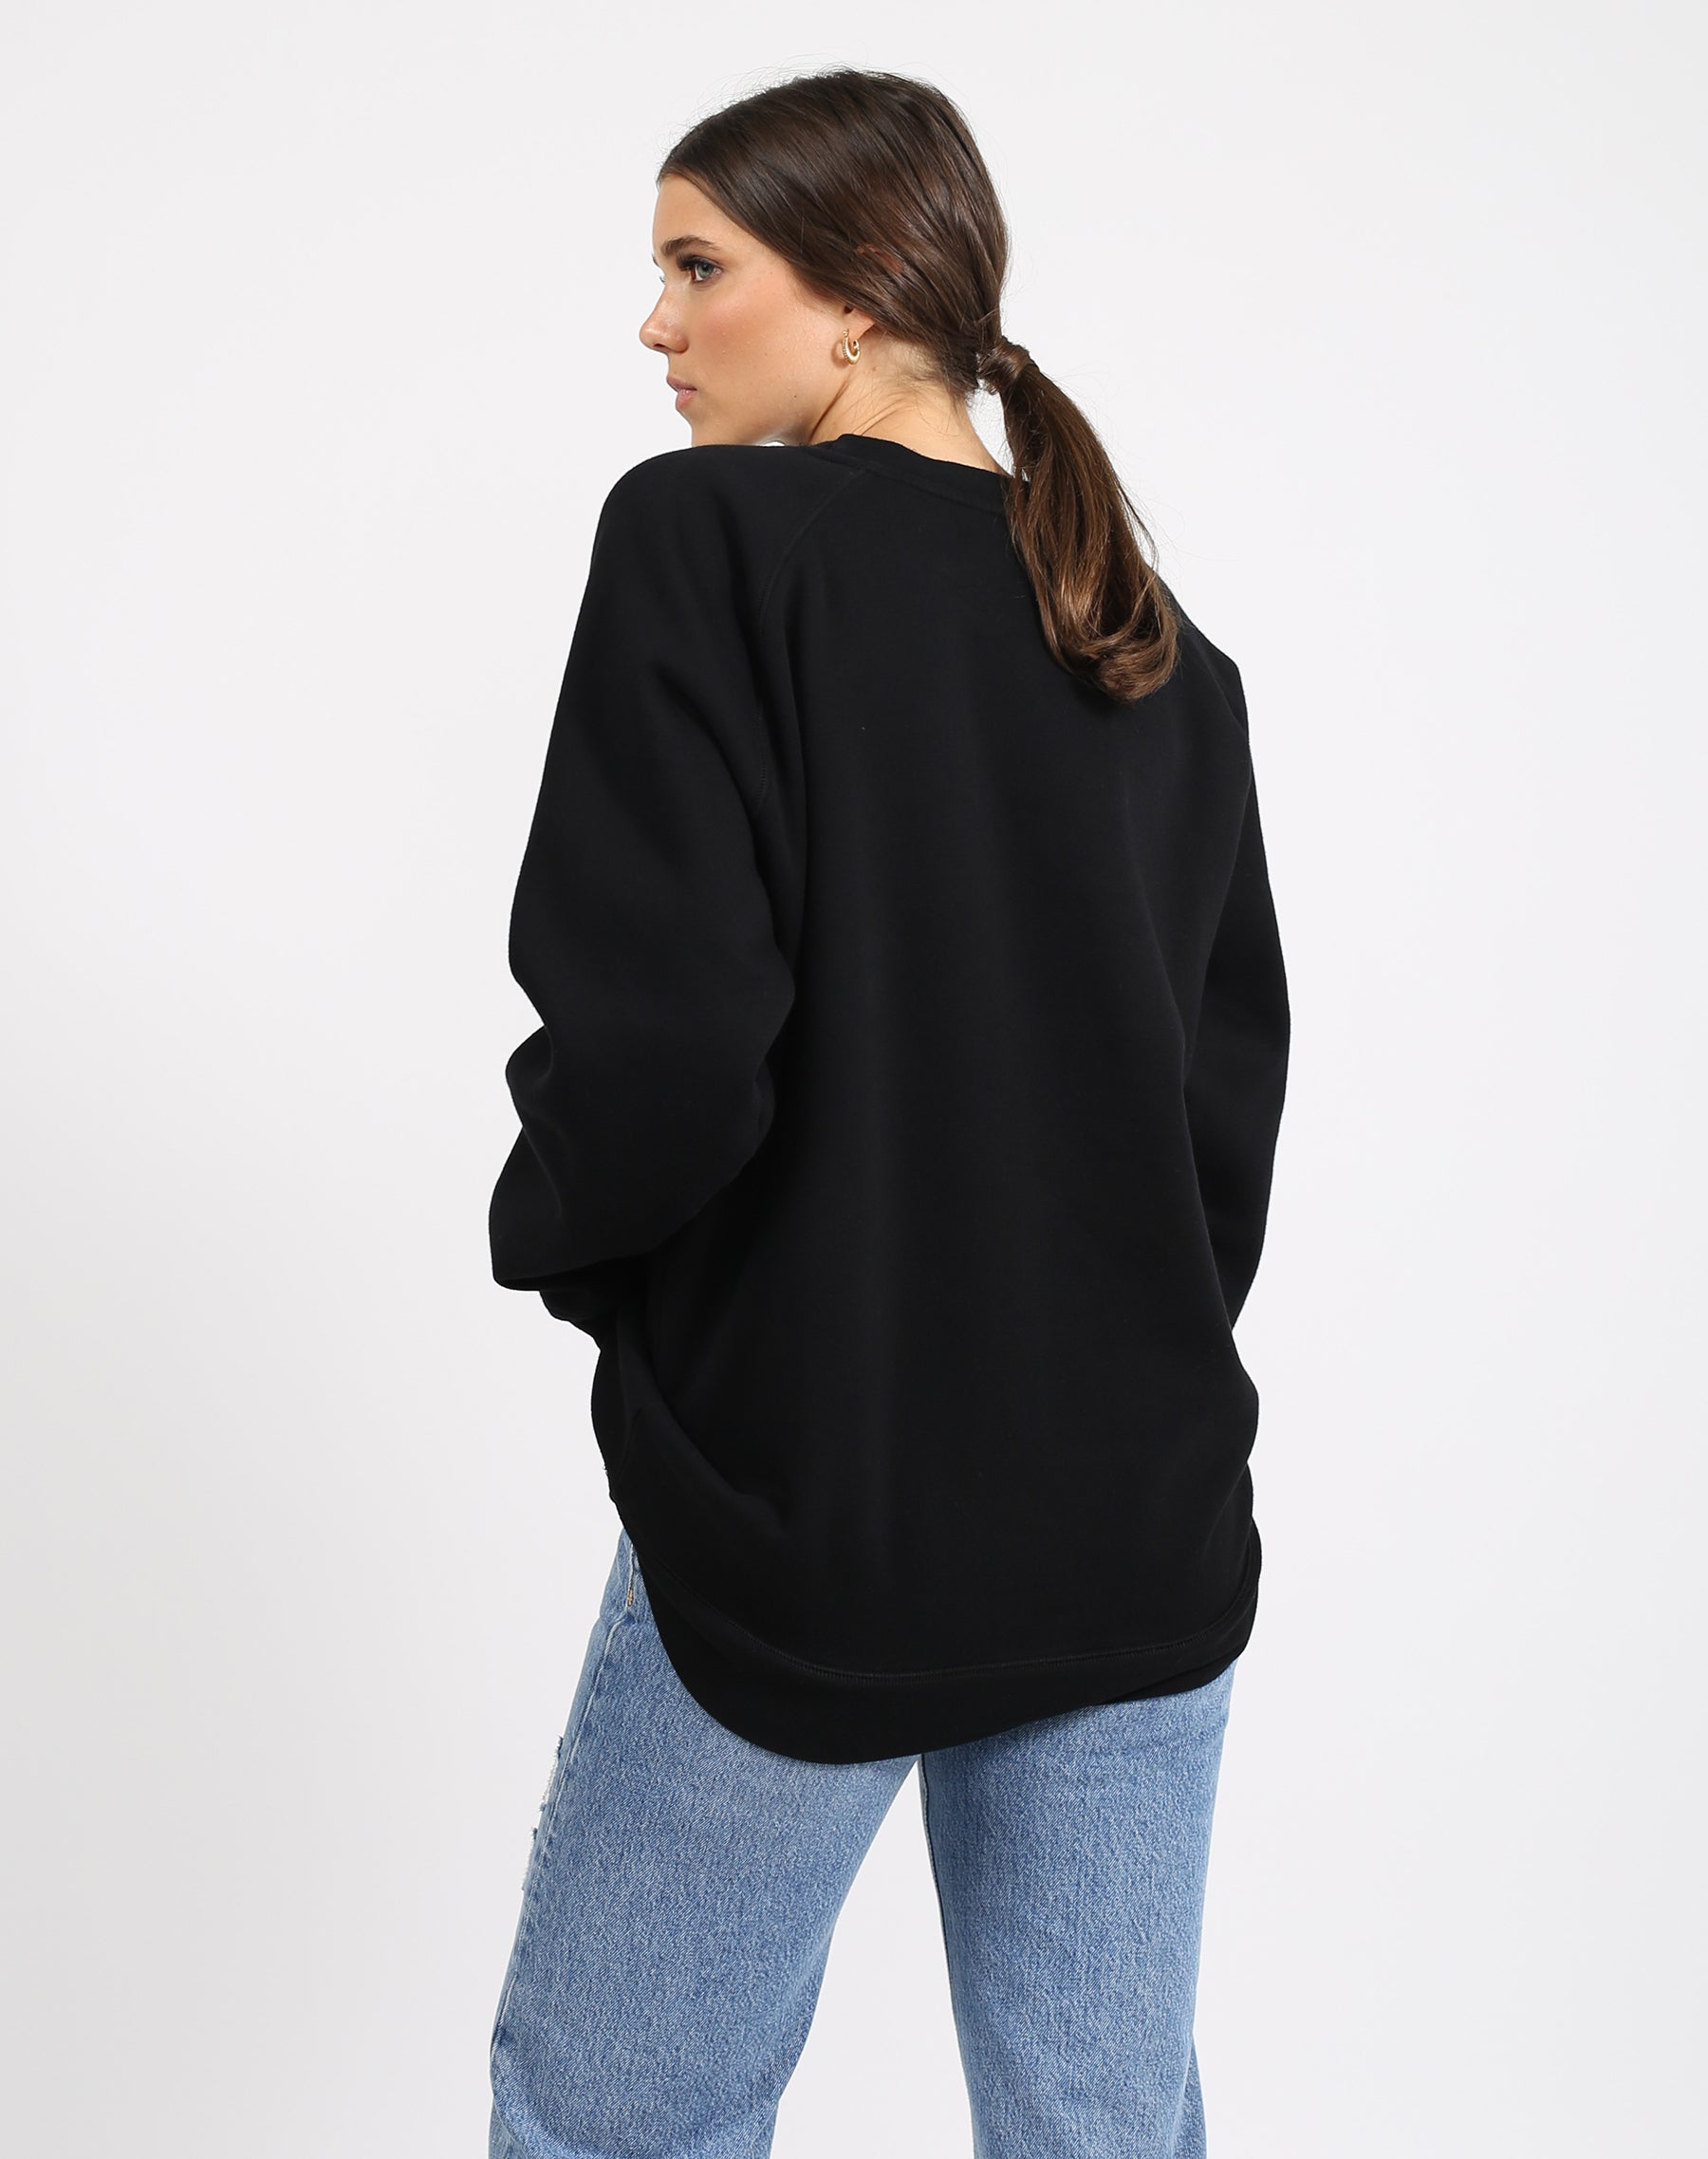 This is a photo of the back of a model wearing the Lounge Jet Black Big Sister Crew Neck Sweatshirt in Black by Brunette the Label.'